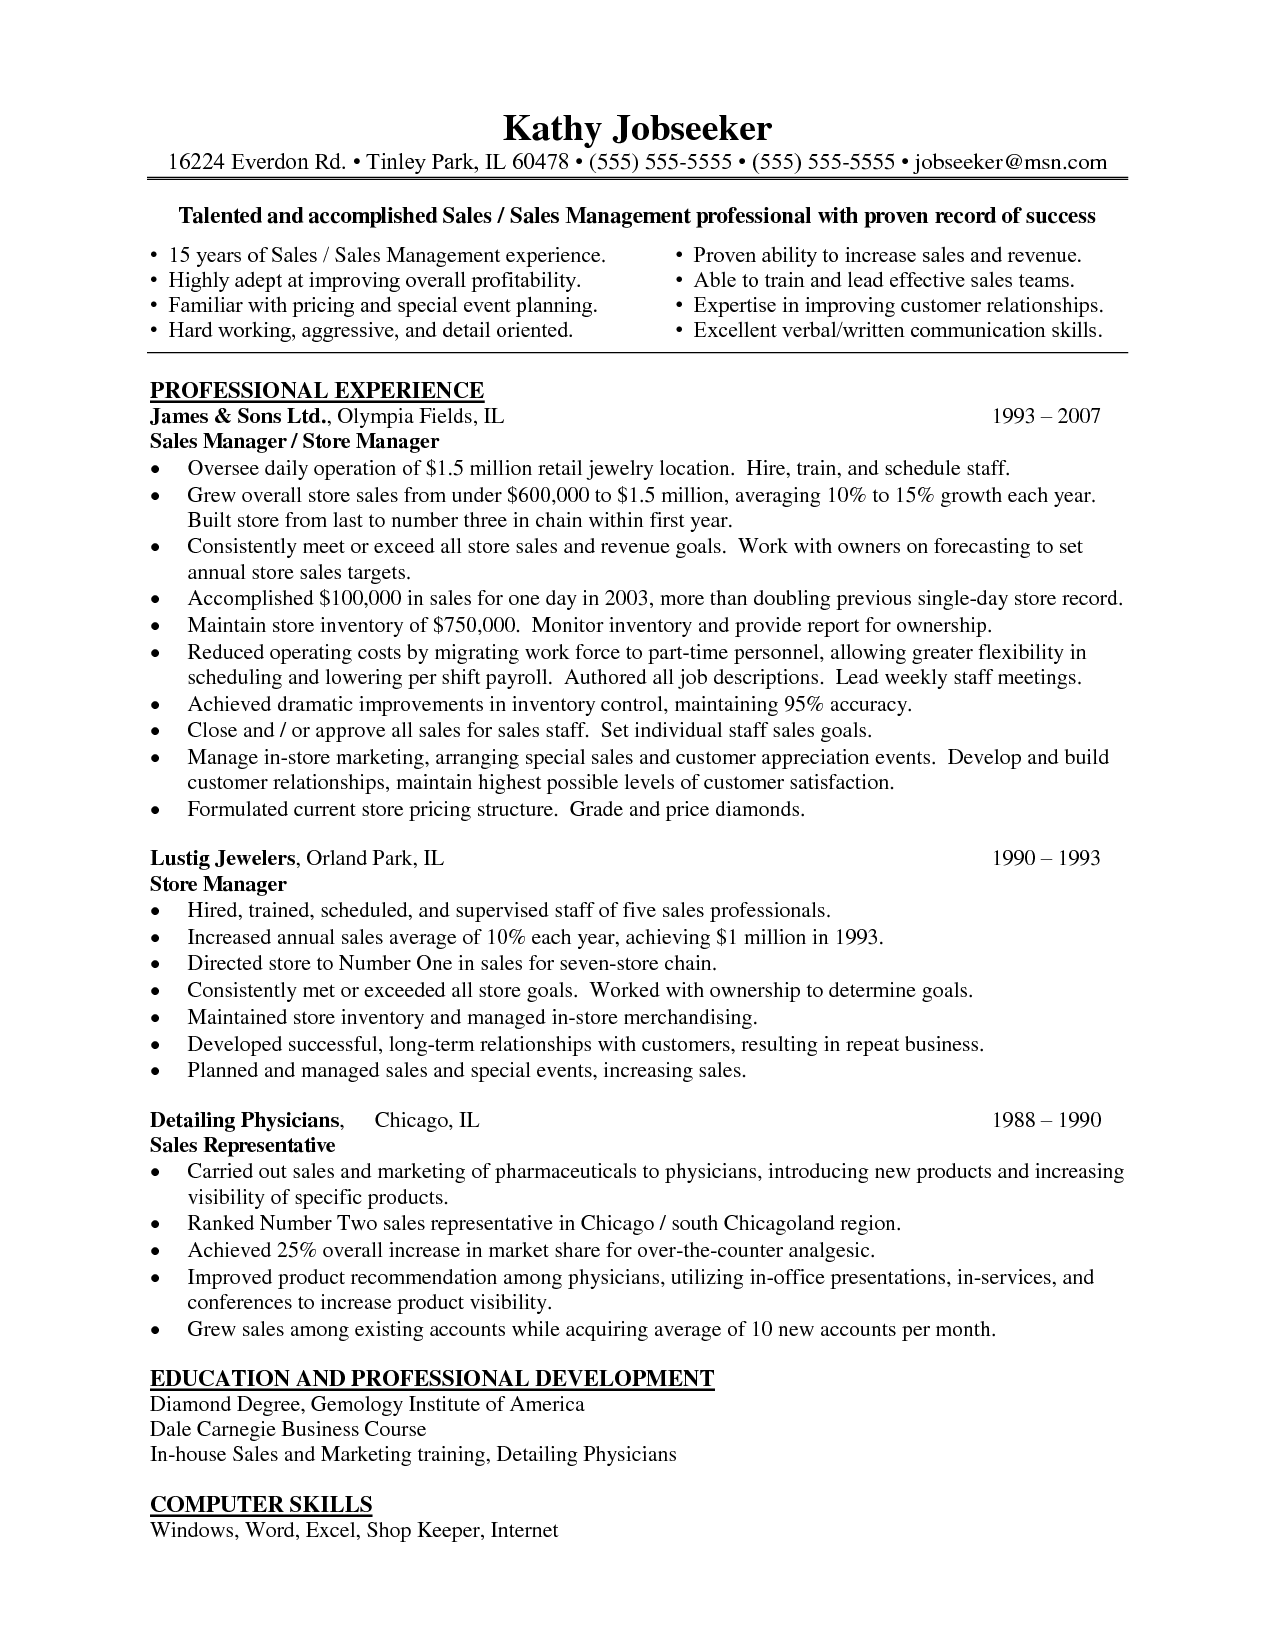 Marvelous Resume Examples For Retail Store Manager | Sample Cover Letter For Retail  Management Job 4